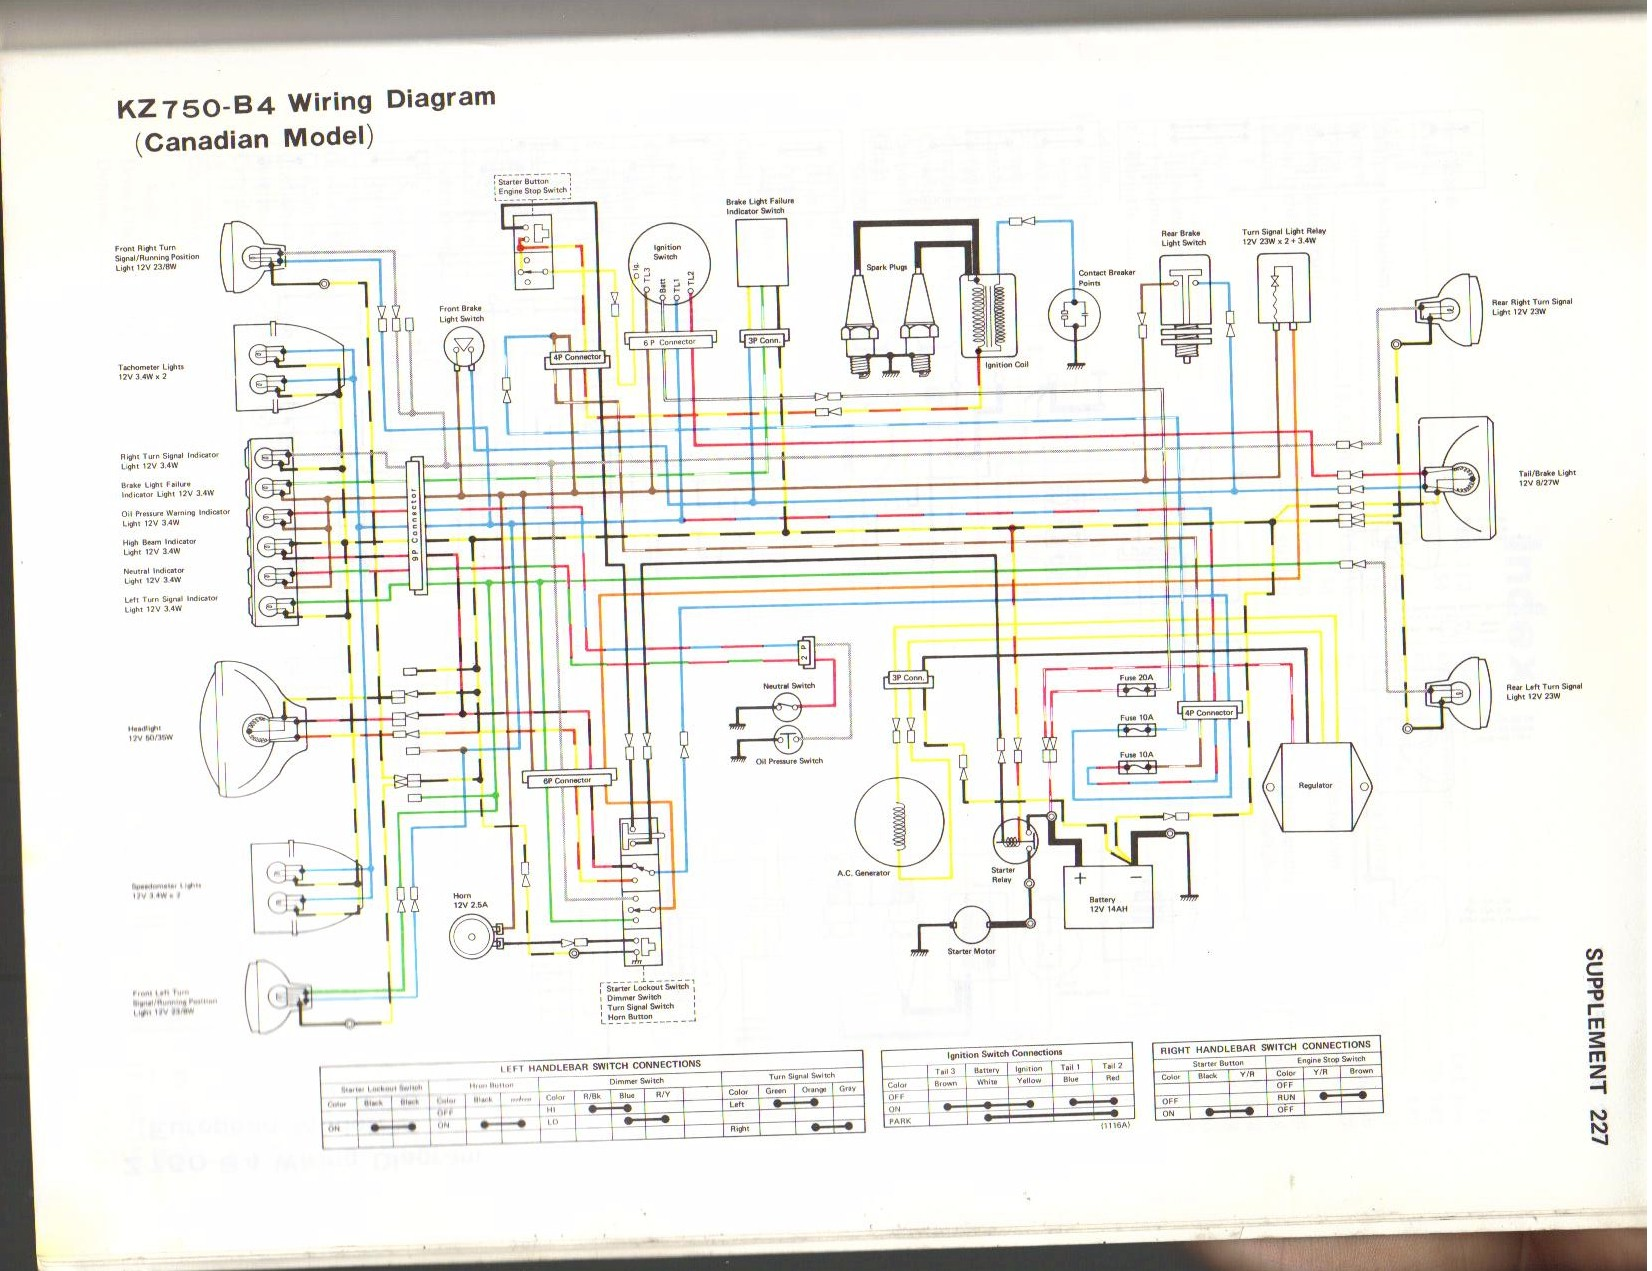 hight resolution of 1981 kawasaki wiring diagram wiring diagram fascinating 1978 kawasaki k z 750 wiring diagram